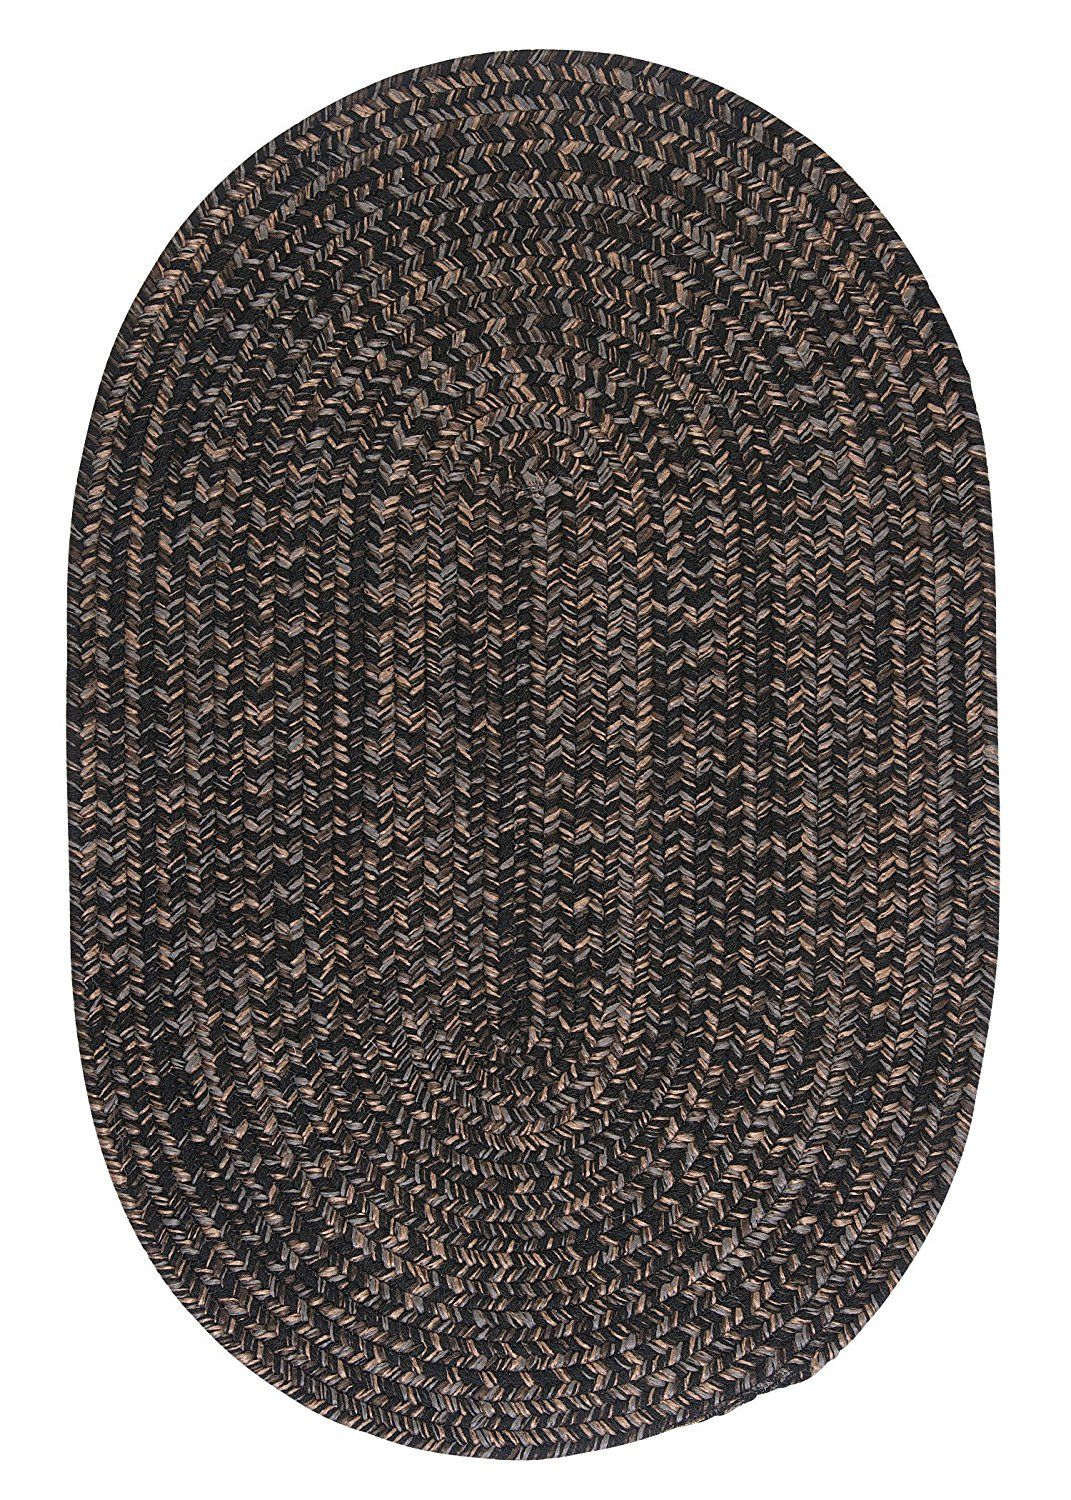 Hayward Round Area Rug 4 Feet Black Click Image For More